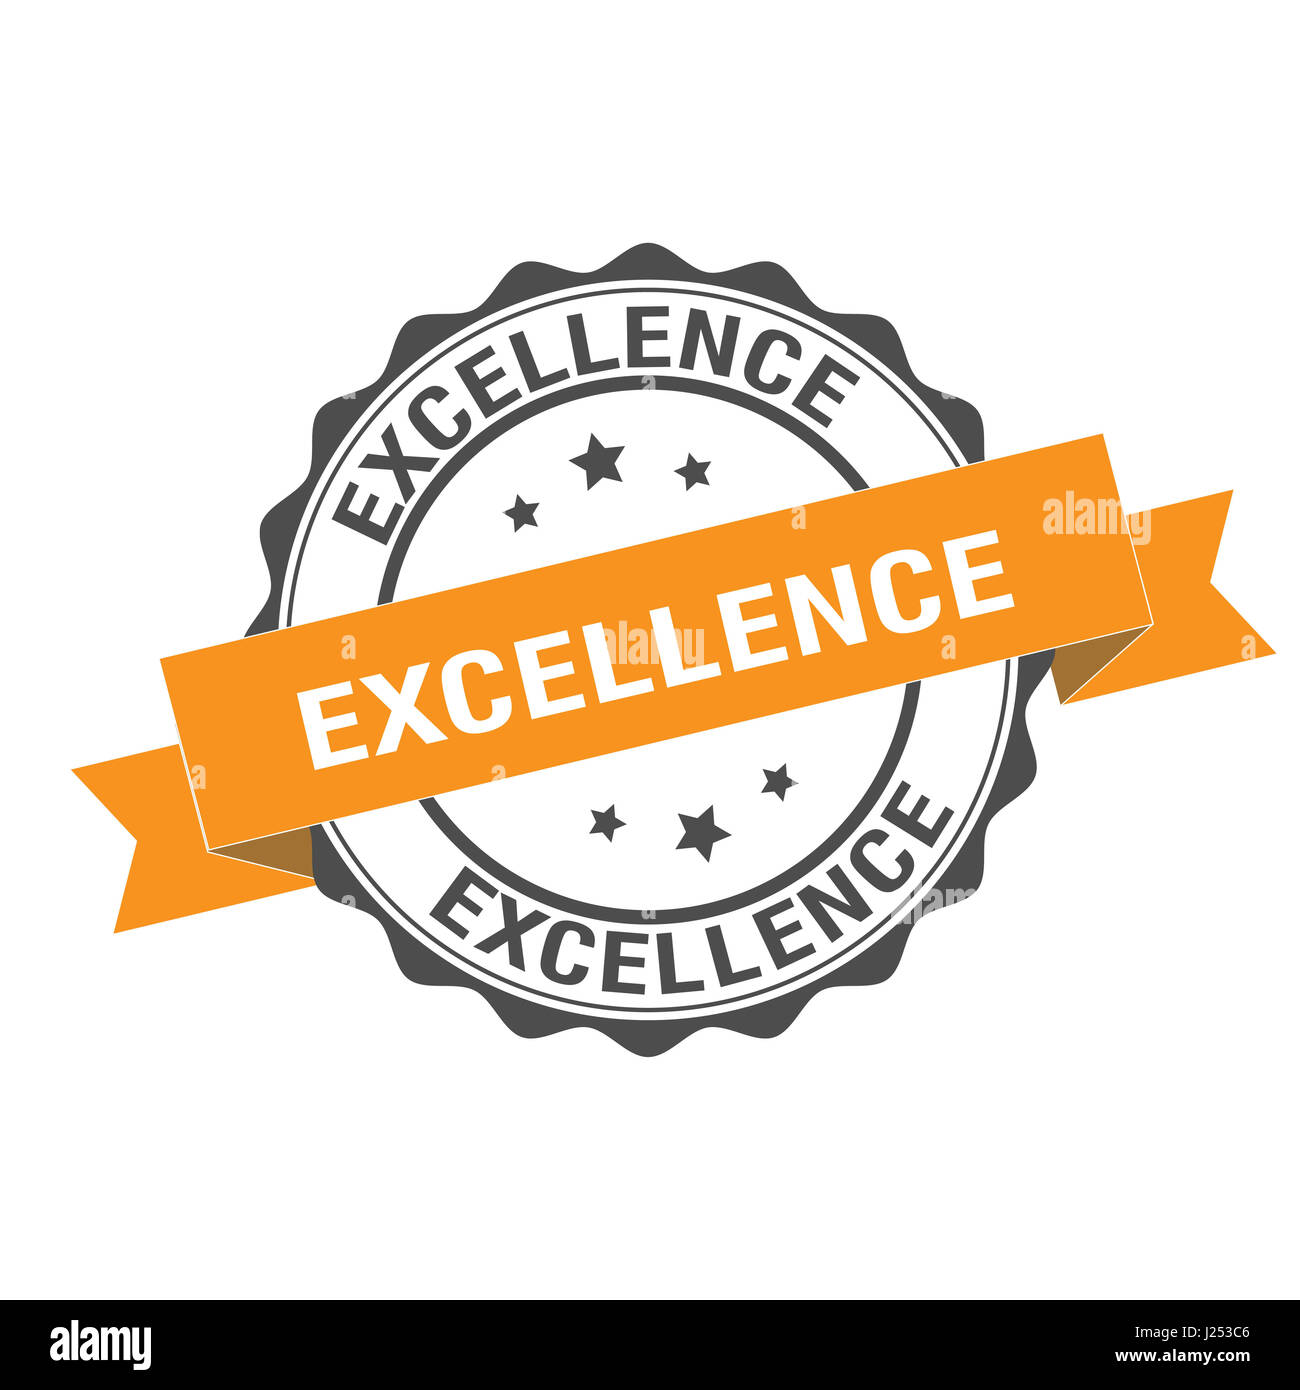 Excellence stamp illustration - Stock Image